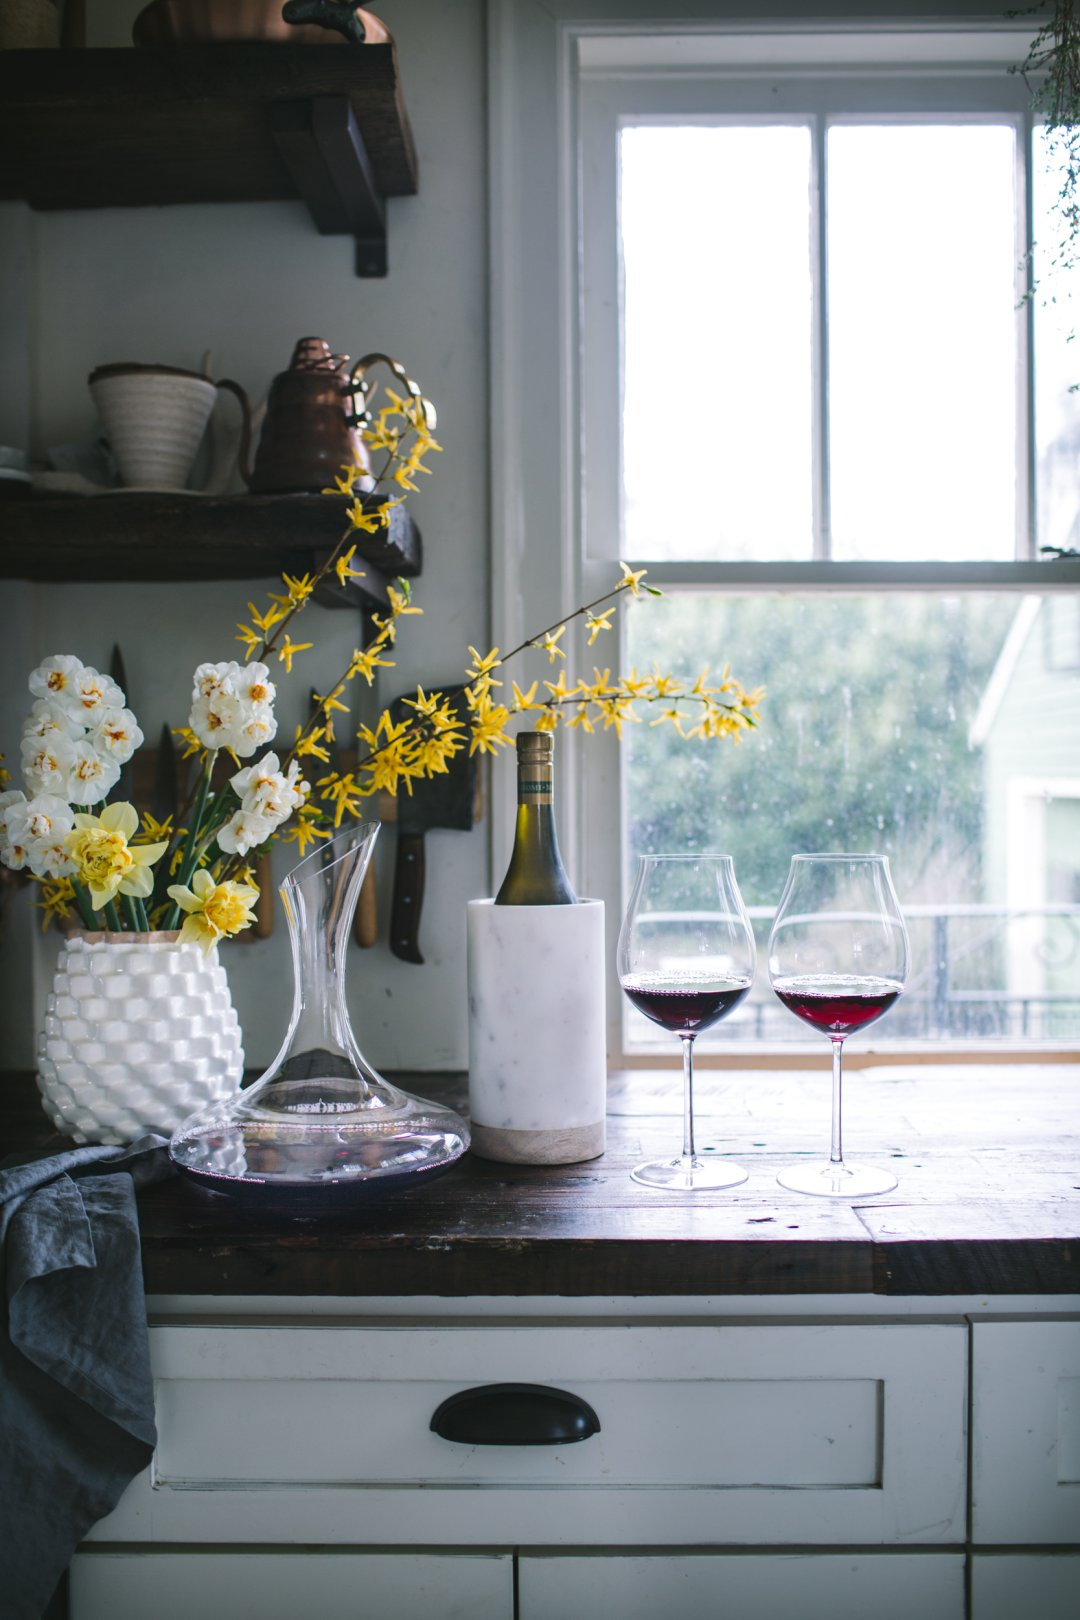 Vase with big bouquet of yellow spring flowers, wine carafe, wine in wine cooler, and wine glasses filled with red wine on countertop